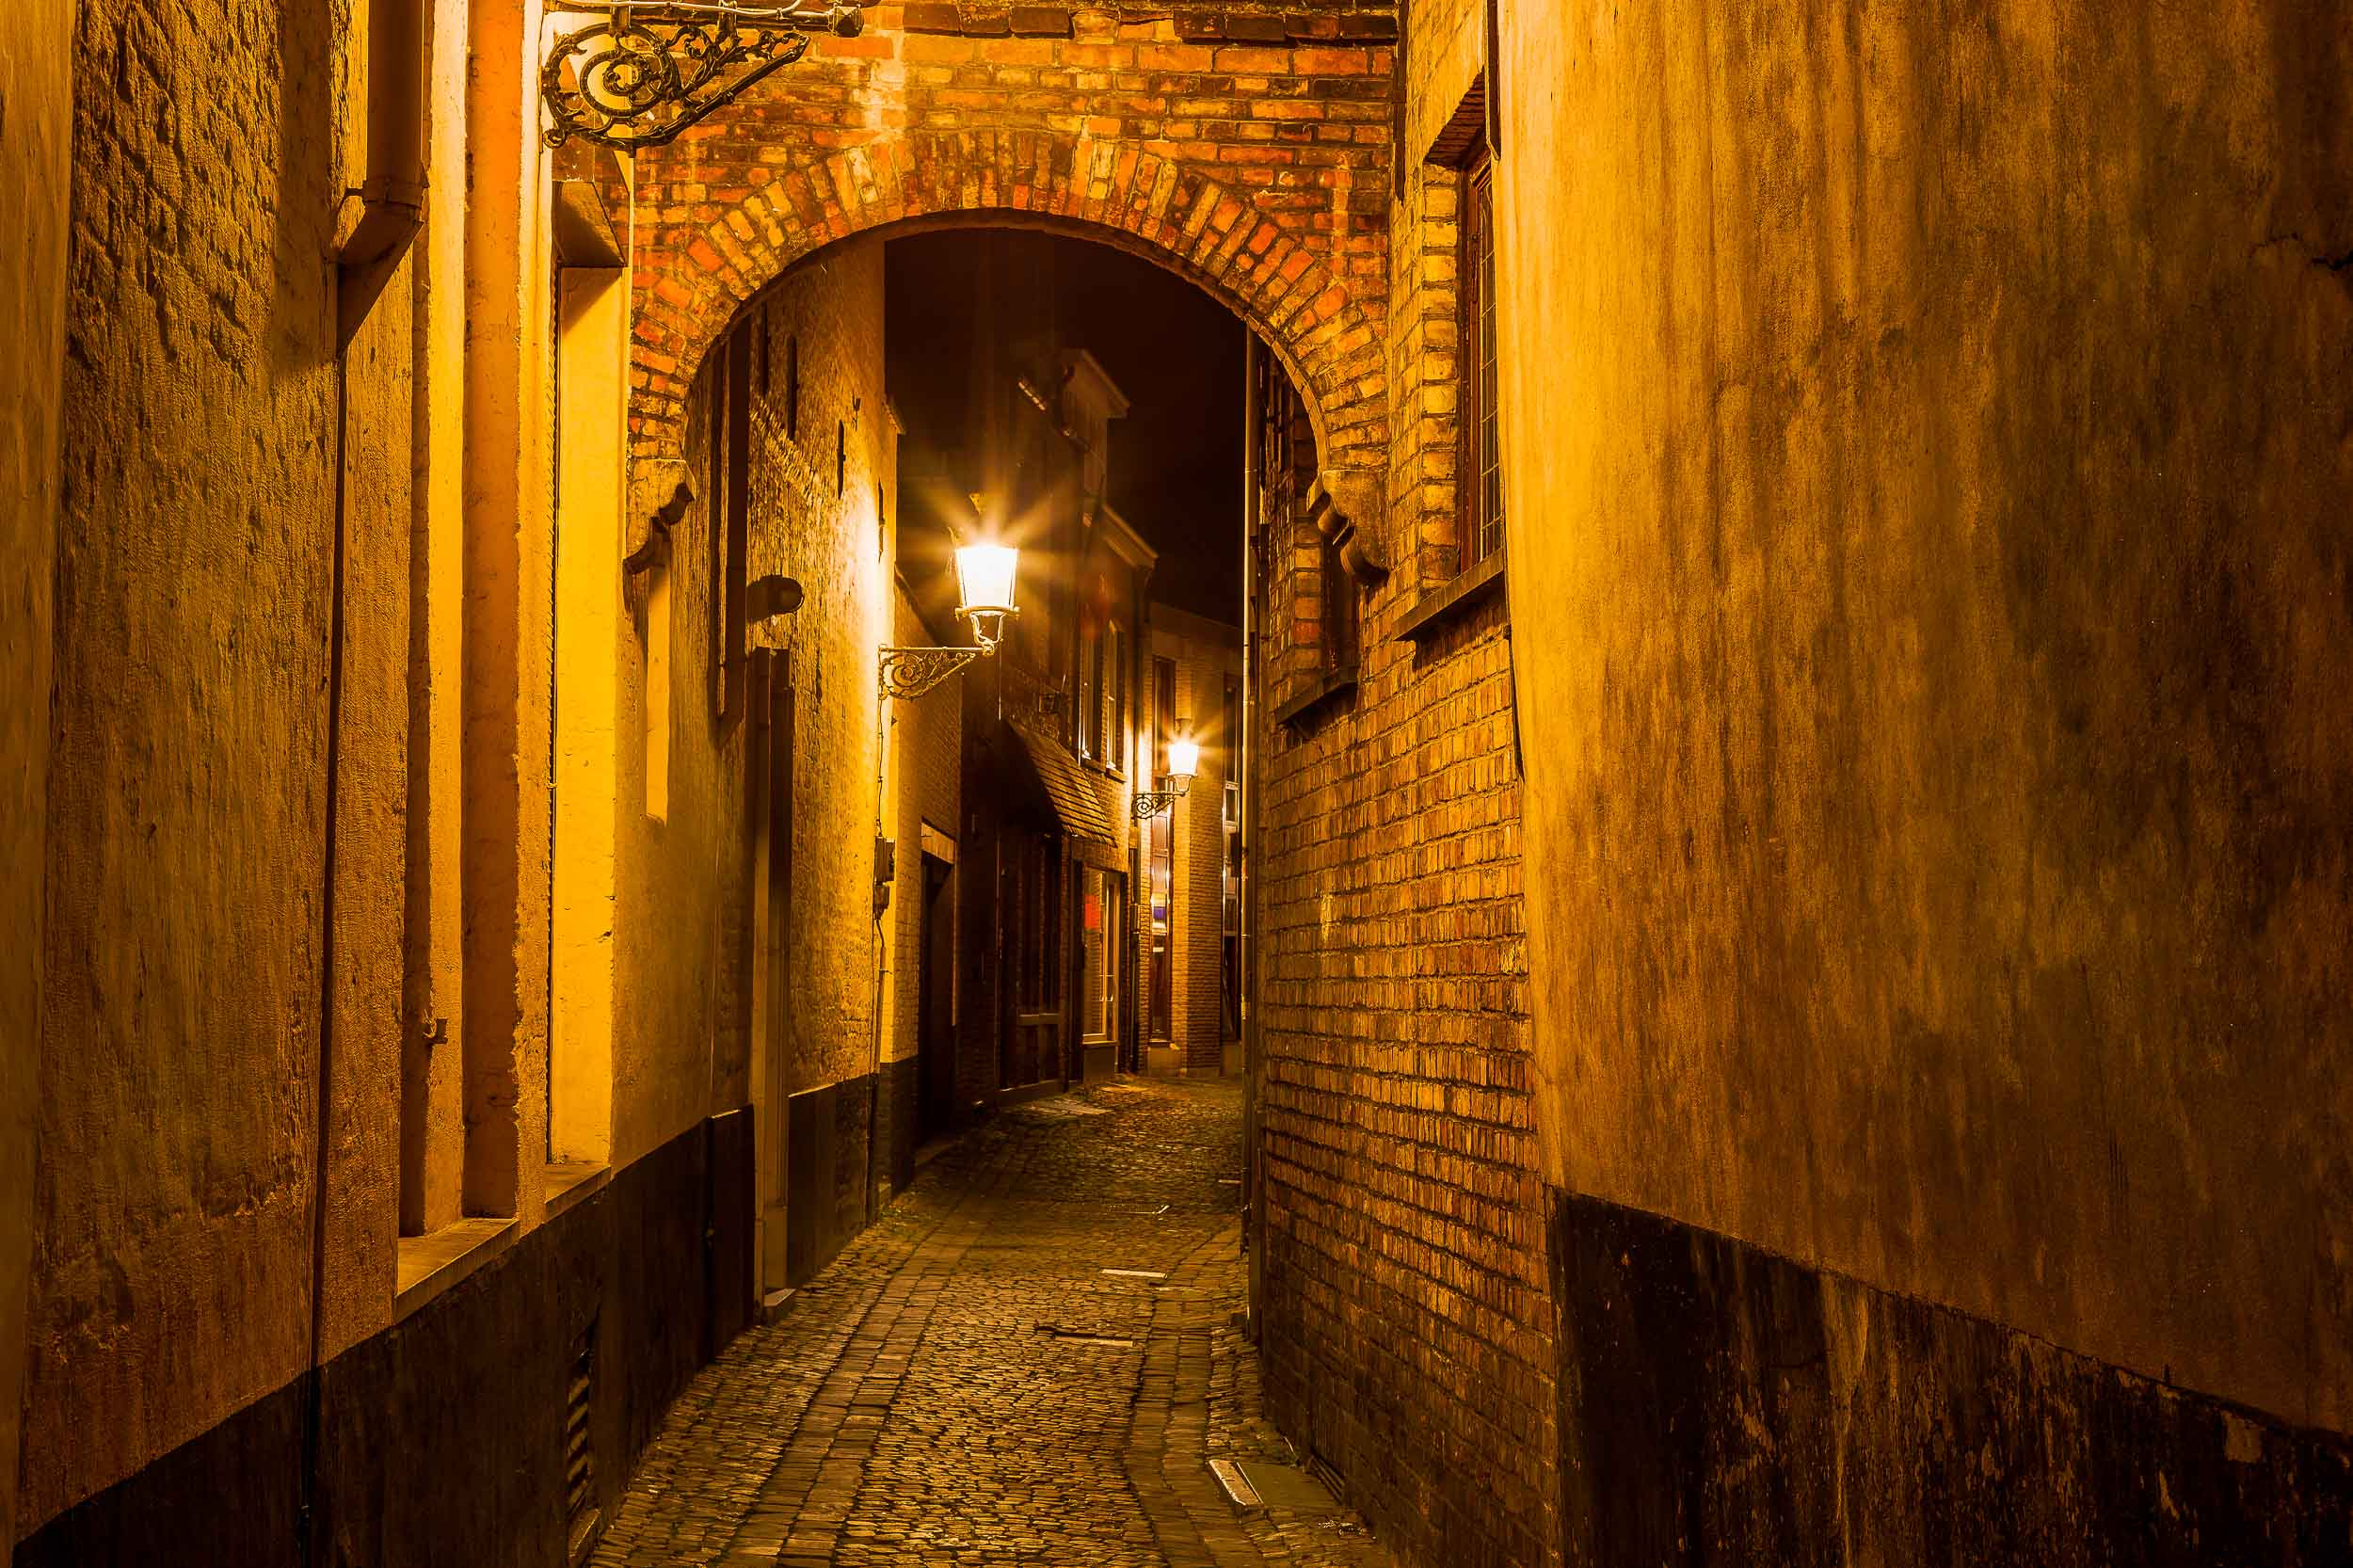 A  colorfully lit alleyway , photographed at night, in the city of  Bruges  (i.e., Brugge),  Belgium .